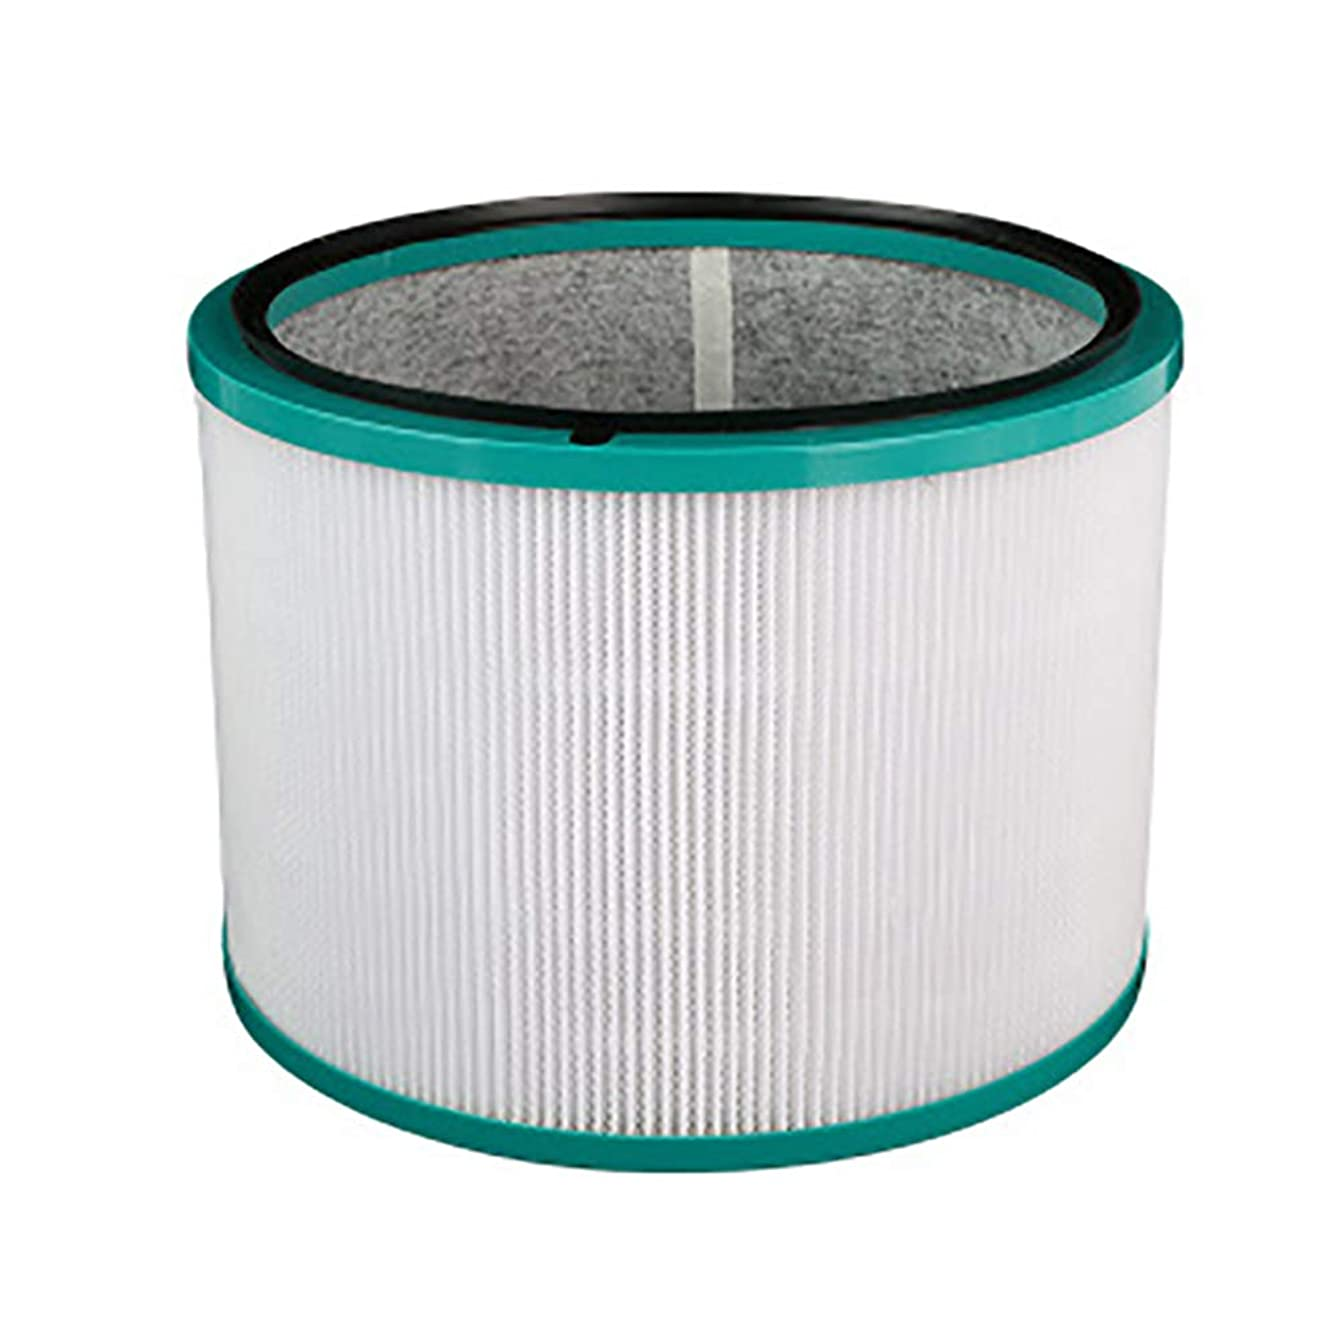 Desk Purifier Replacement Filter Compatible HP02 Pure Hot + Cool Link, DP01 Pure Cool Link Desk, Replaces 968125-03